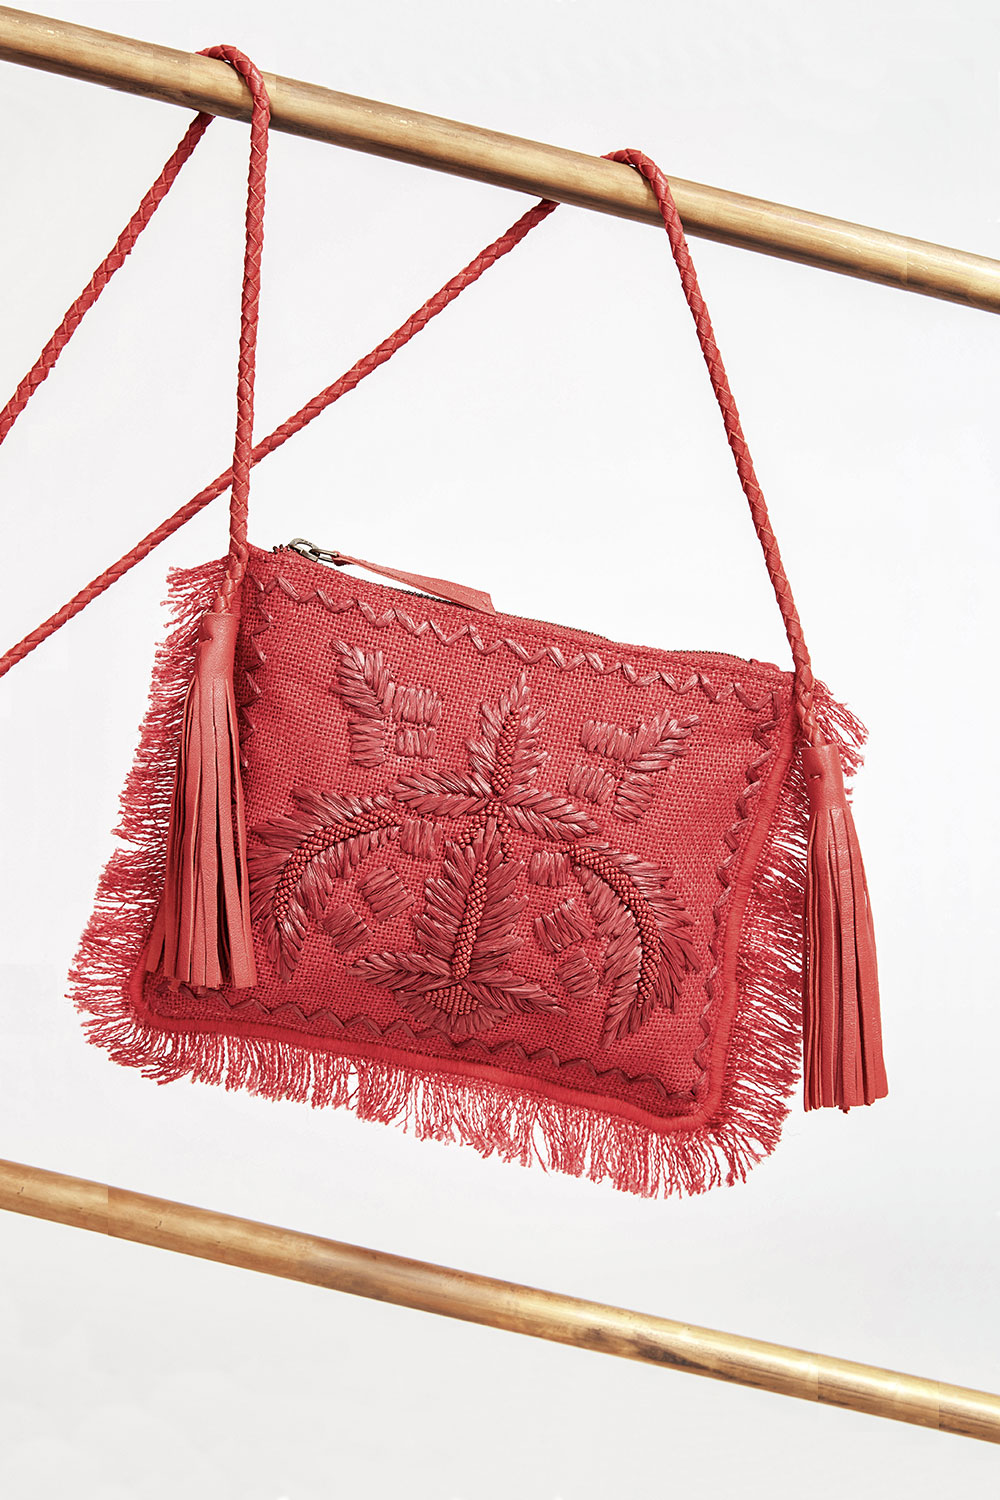 Pochette Puppa rouge - Antik Batik (photo)